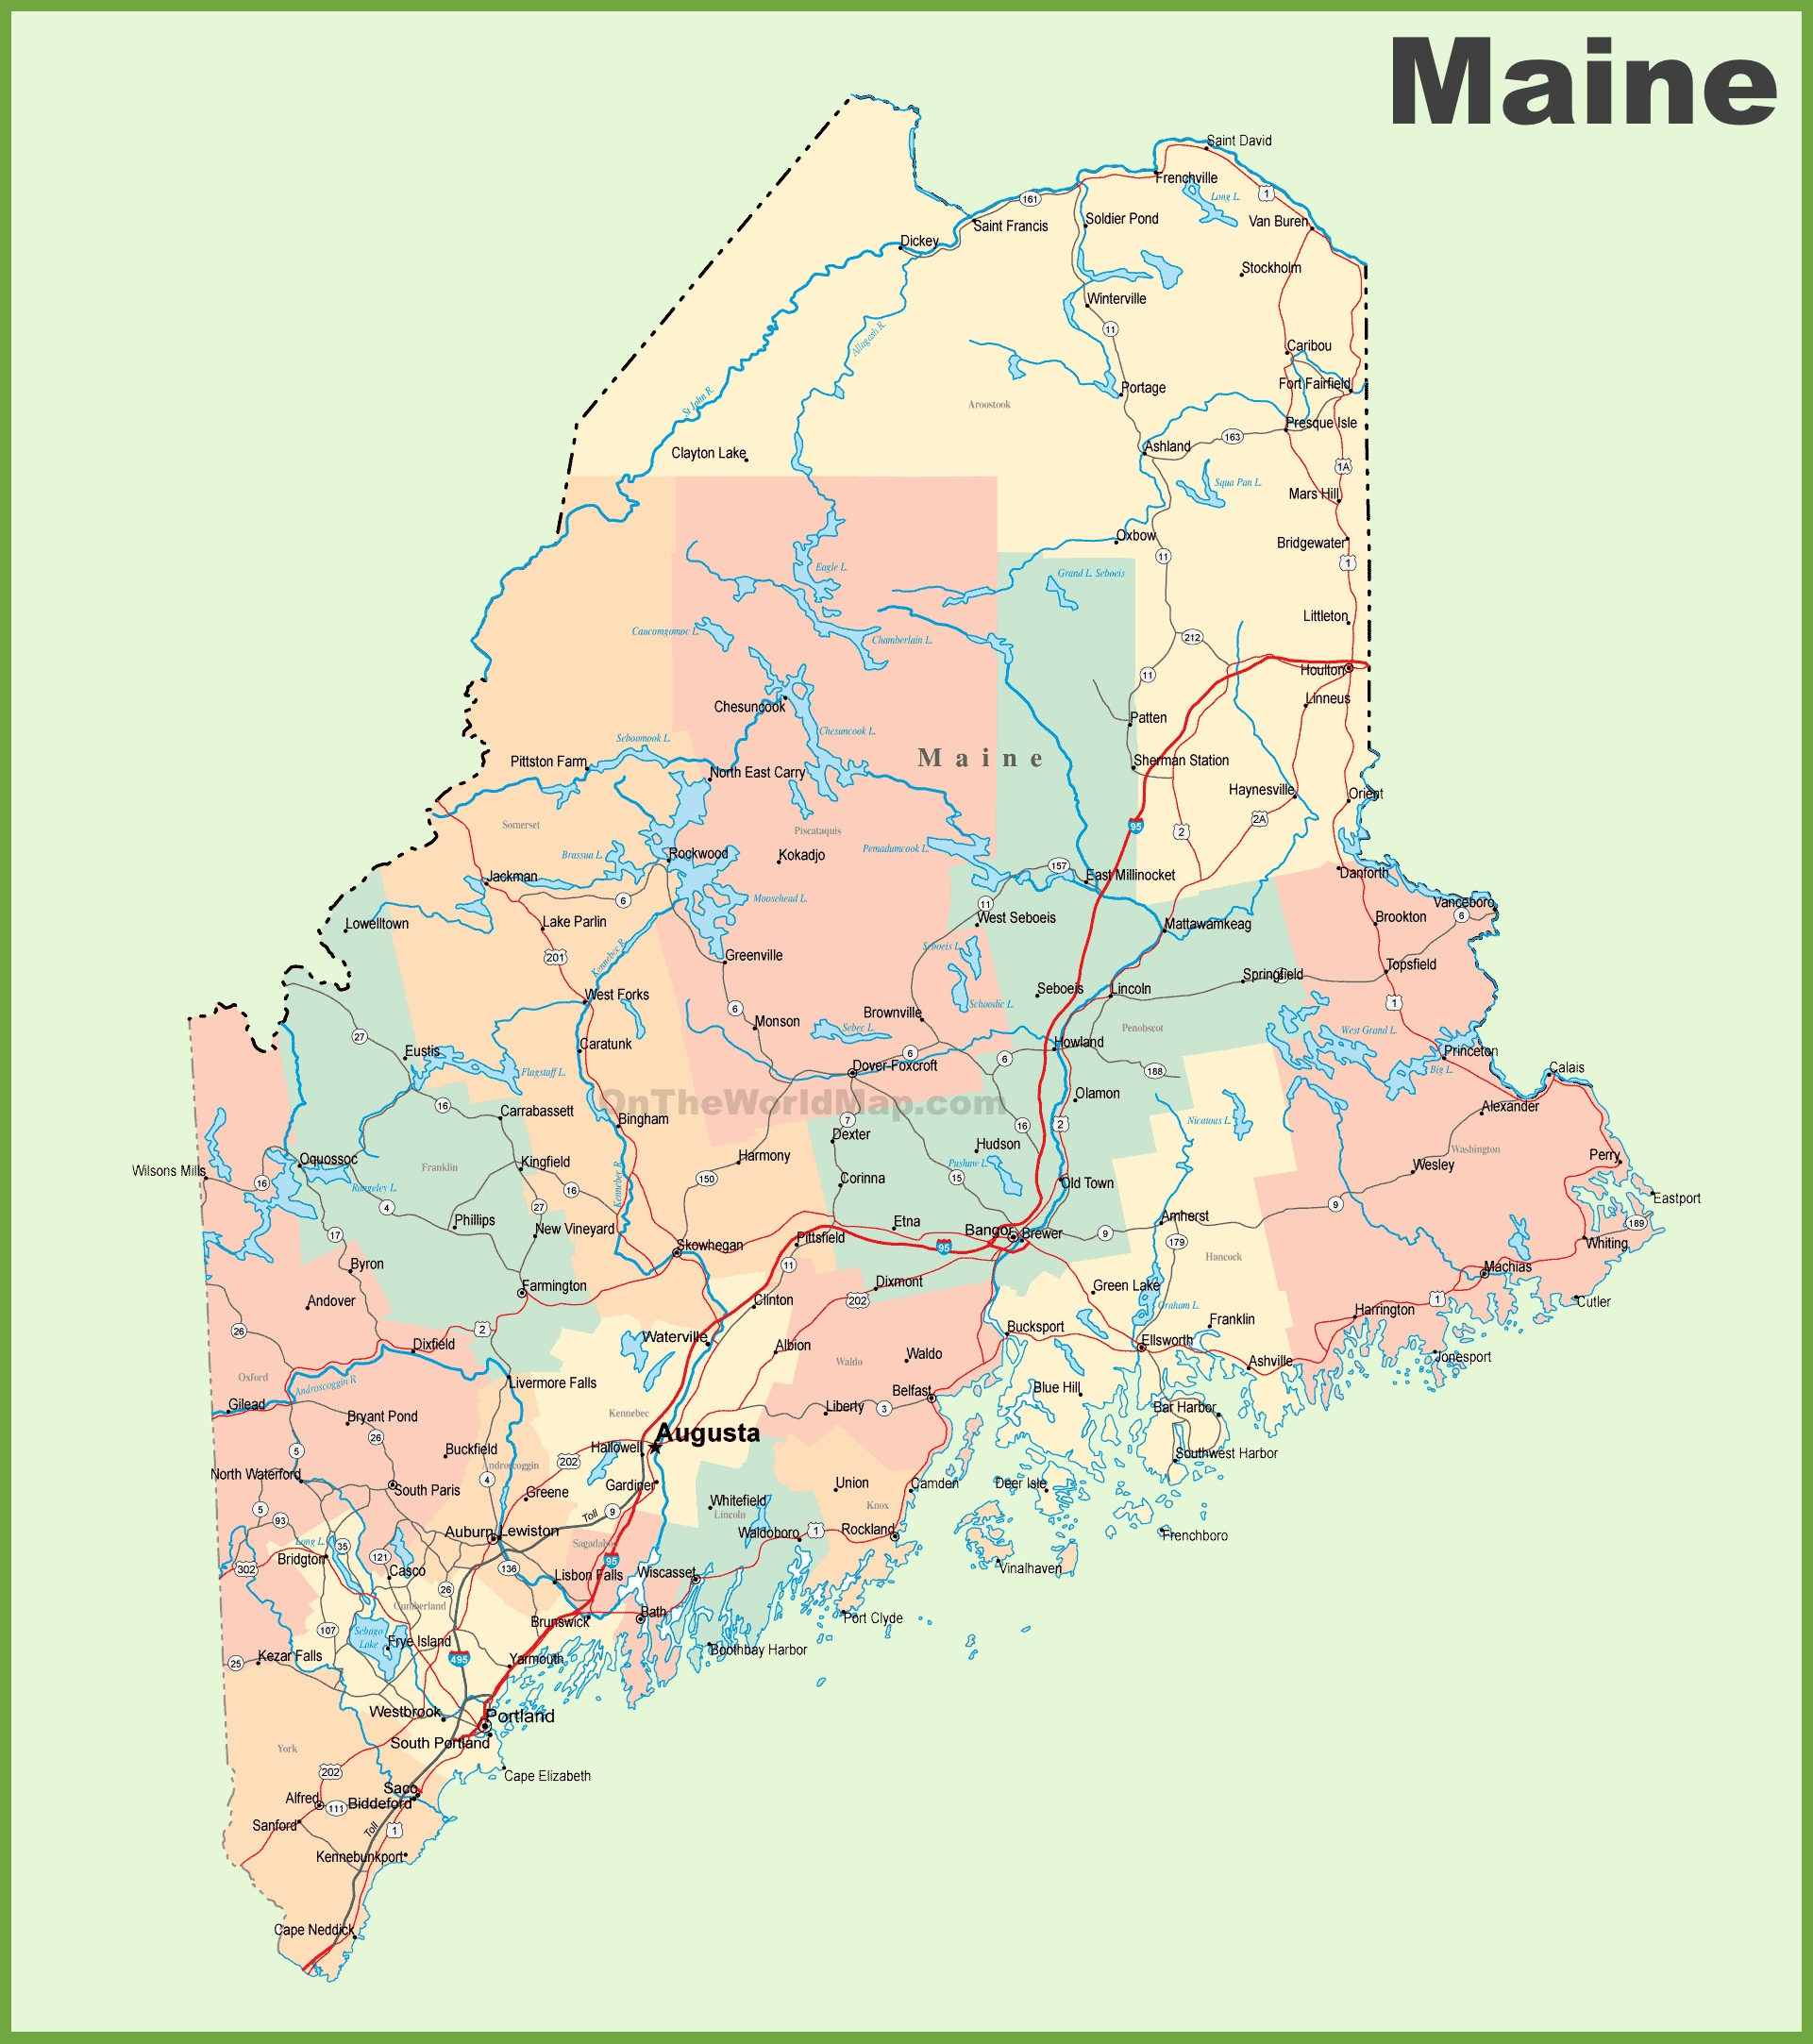 Maine State Maps | USA | Maps of Maine (ME)